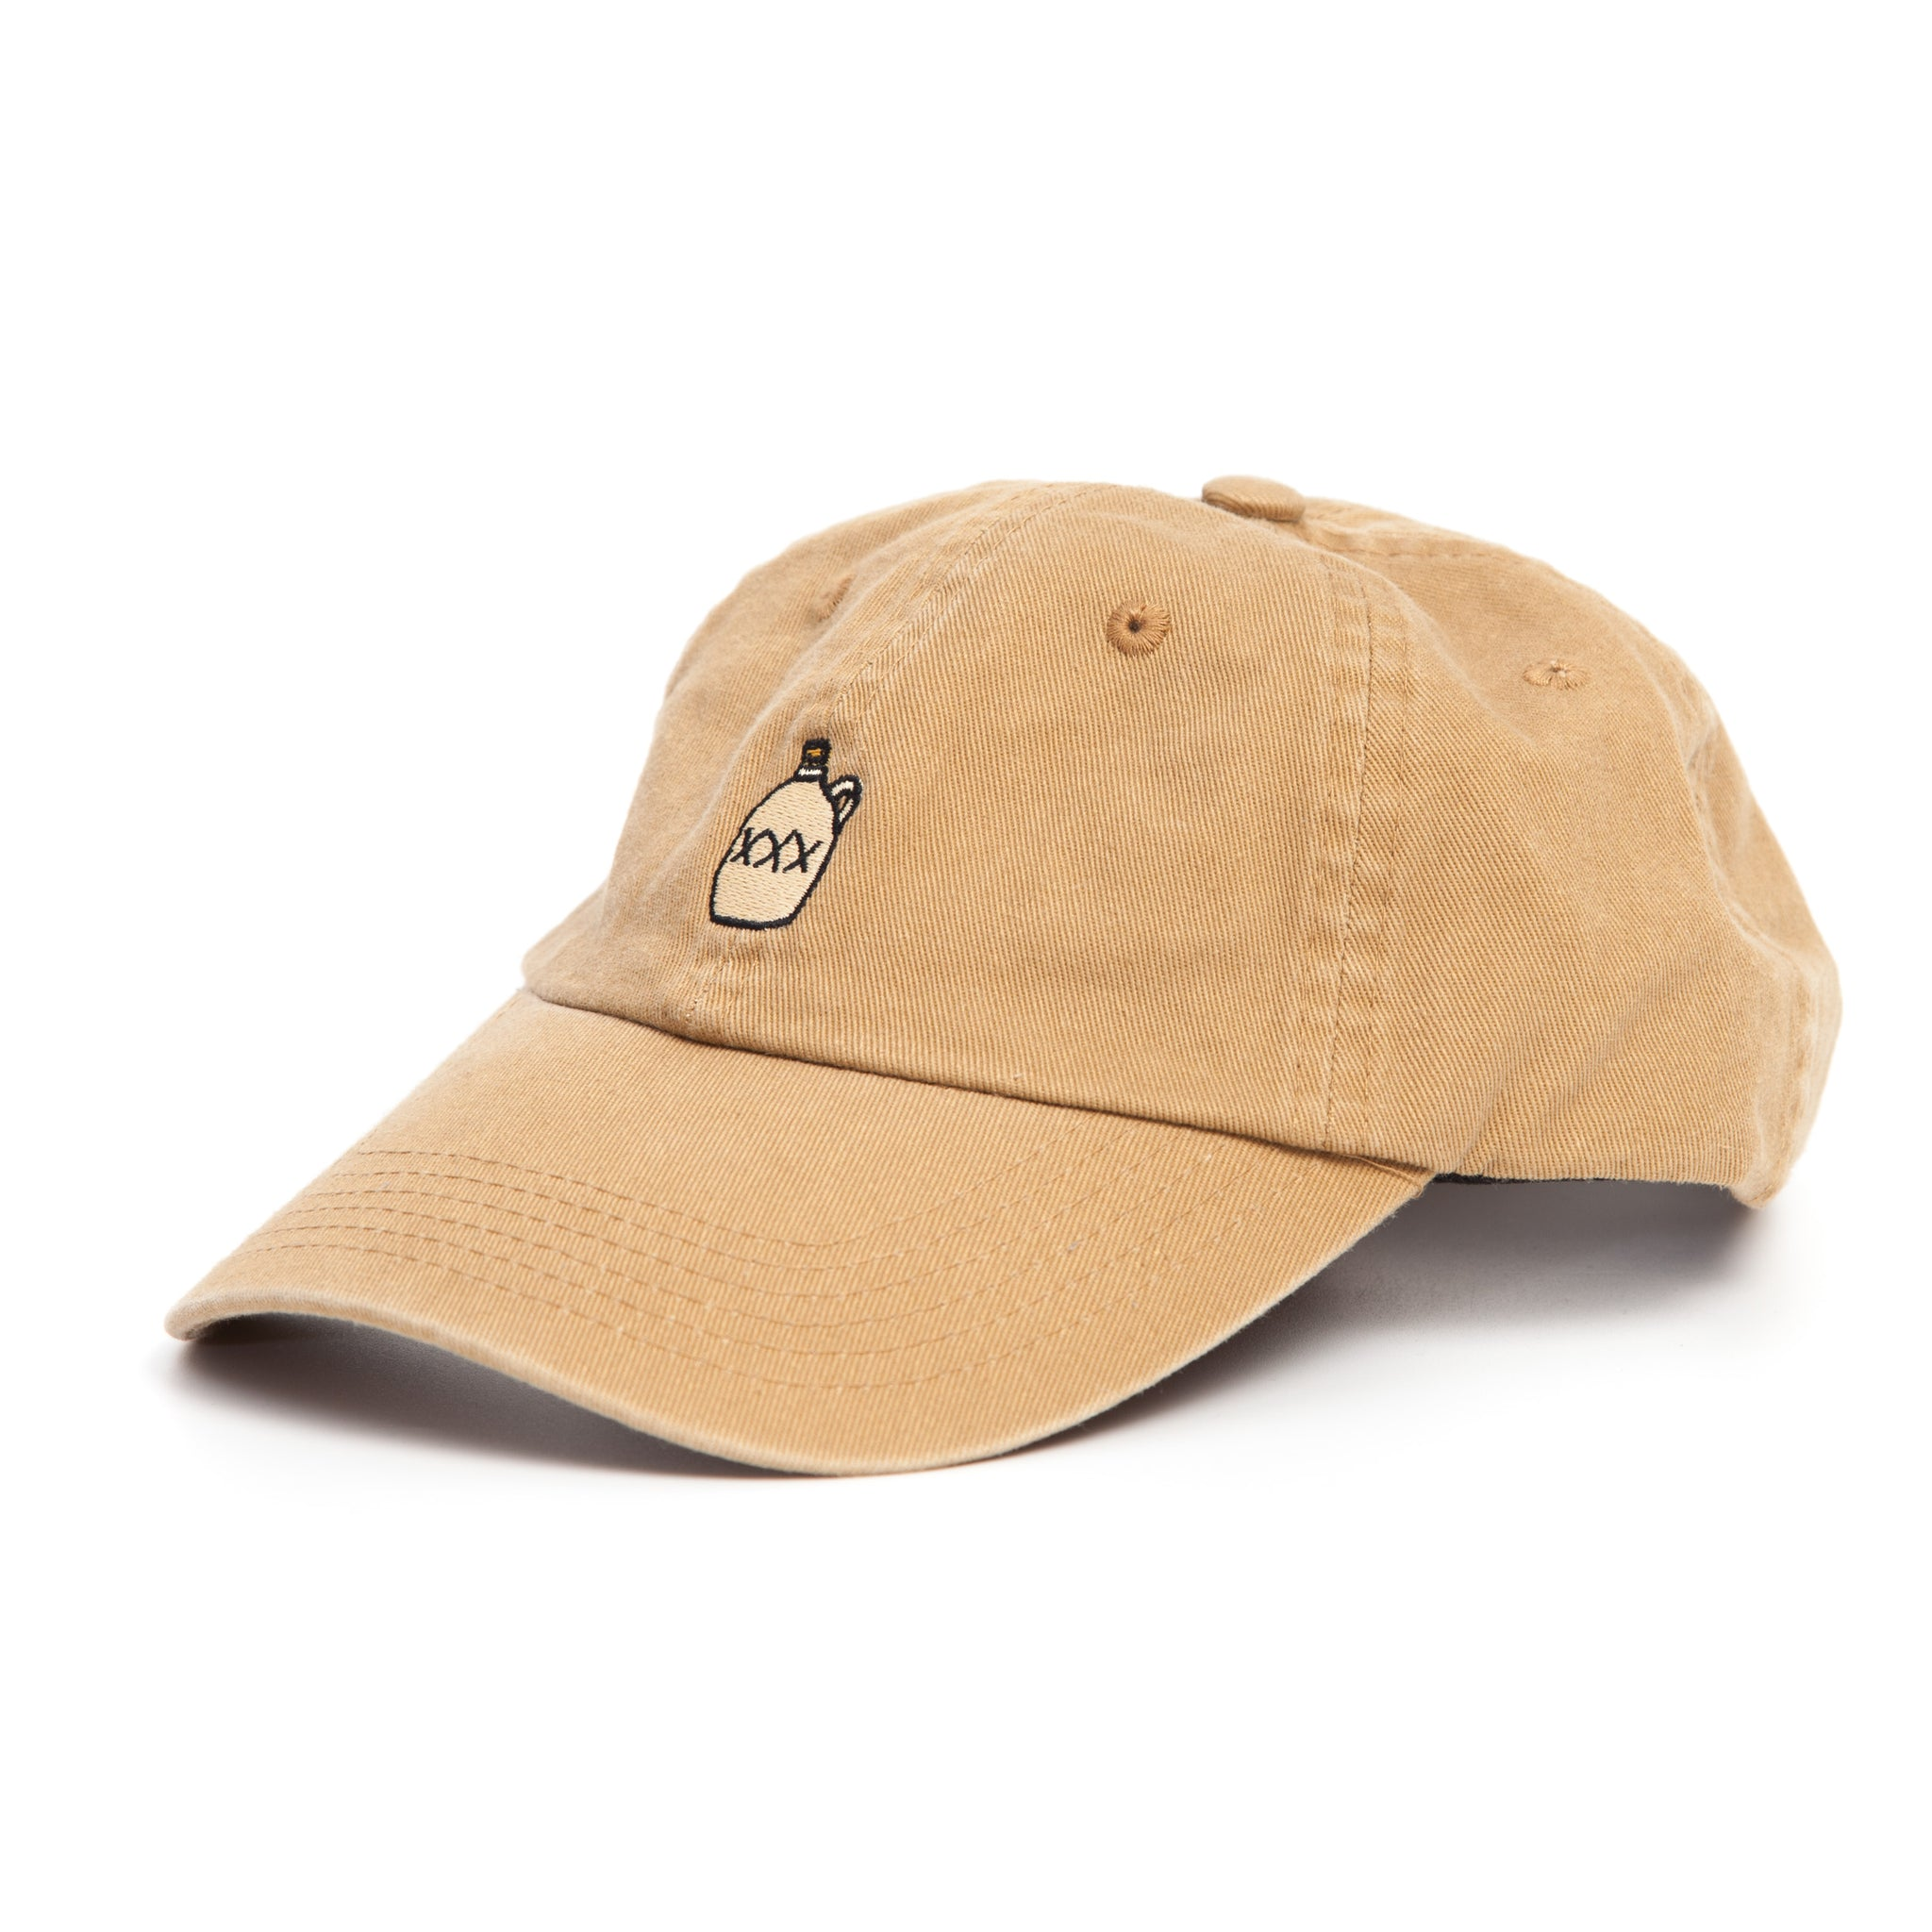 Tan Dad Cap // Free Spirit